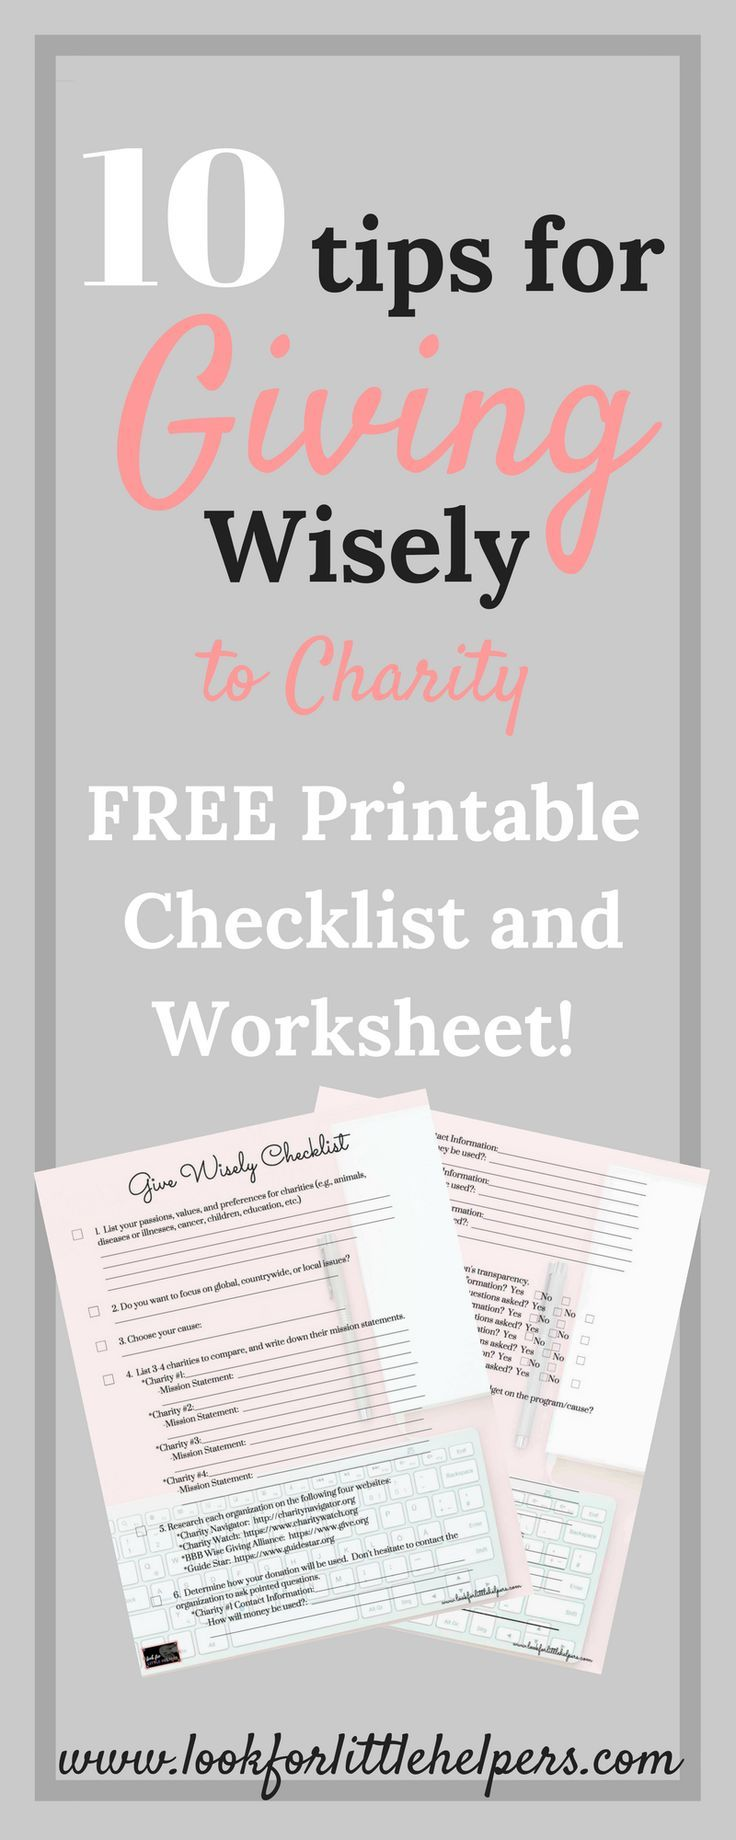 With over 1.5 million charities to choose from, it's hard to decide where your money and time will make the most impact.  Here is a list that will help you make the most of your #donations.  #givewisely #give #charity #kindness #freechecklist #freeworksheet #printable